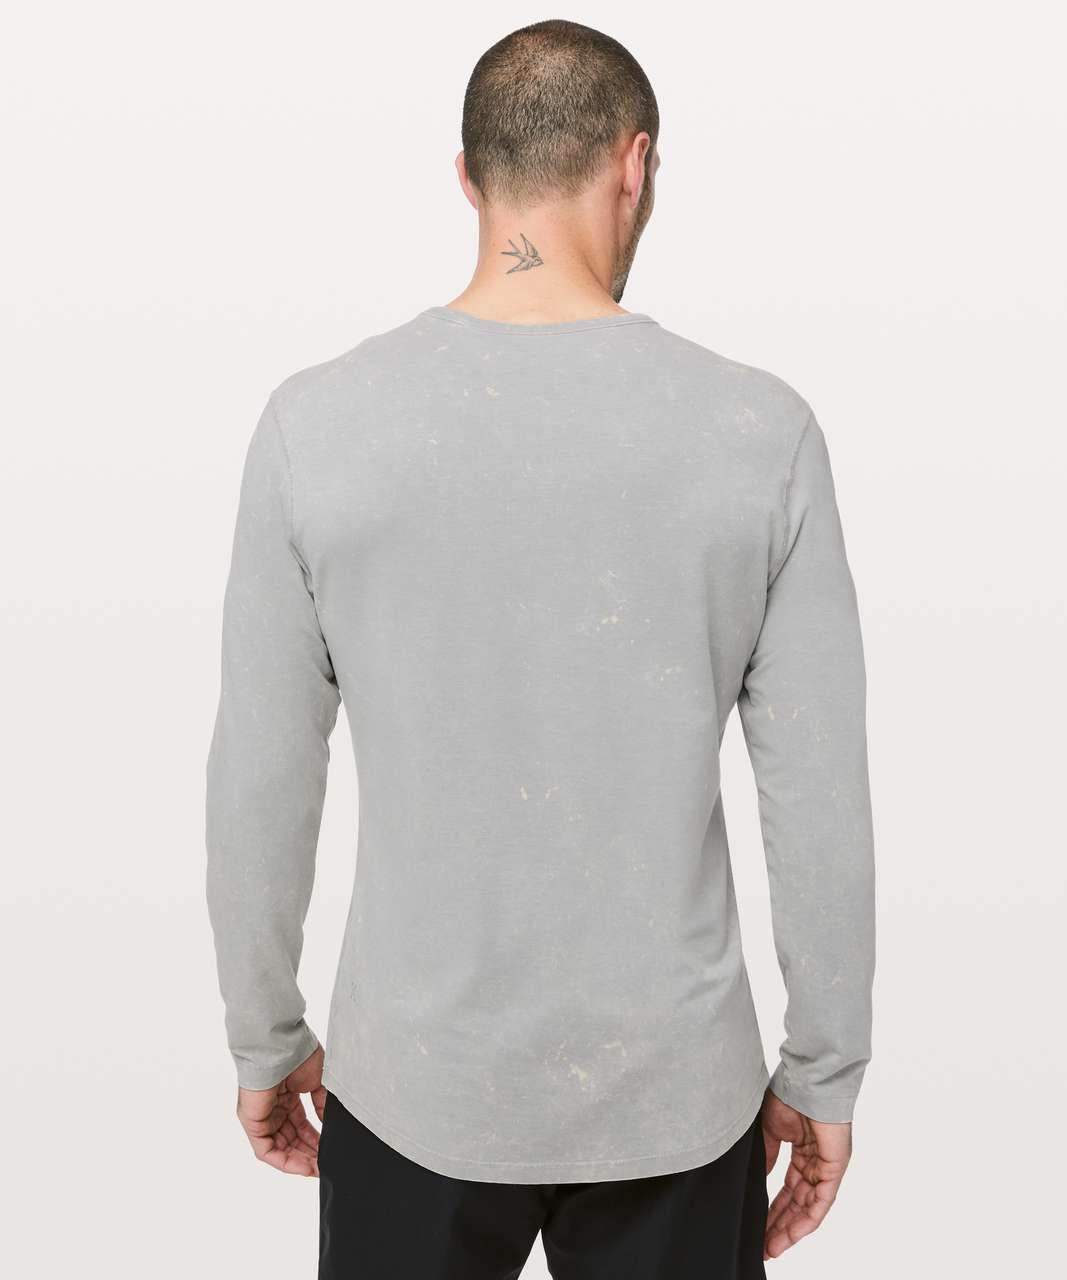 Lululemon 5 Year Basic Long Sleeve *Mineral Wash - Mineral Washed Light Cast